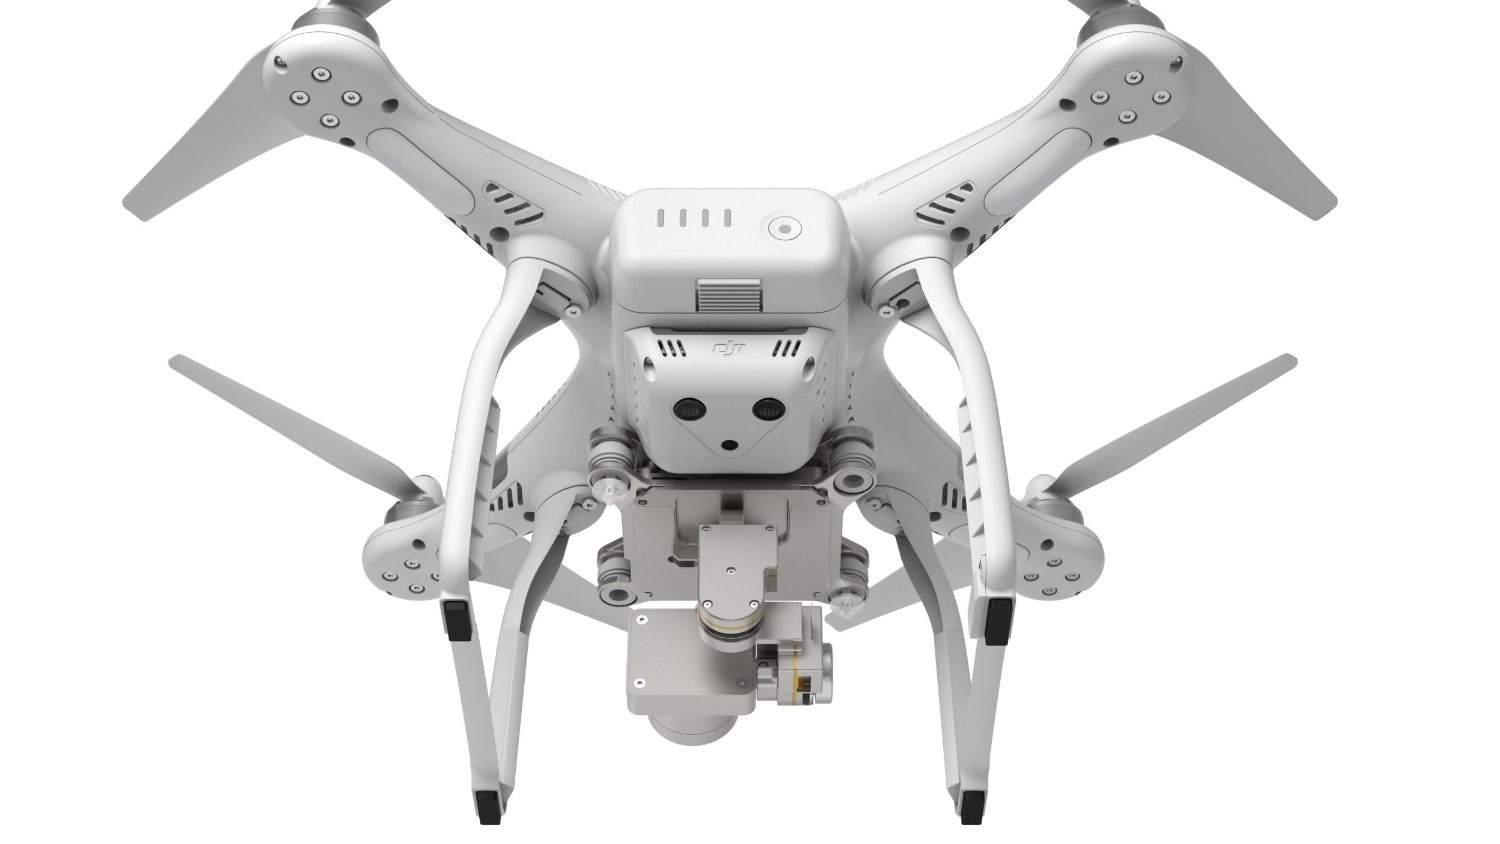 DJI Phantom 3 Advance